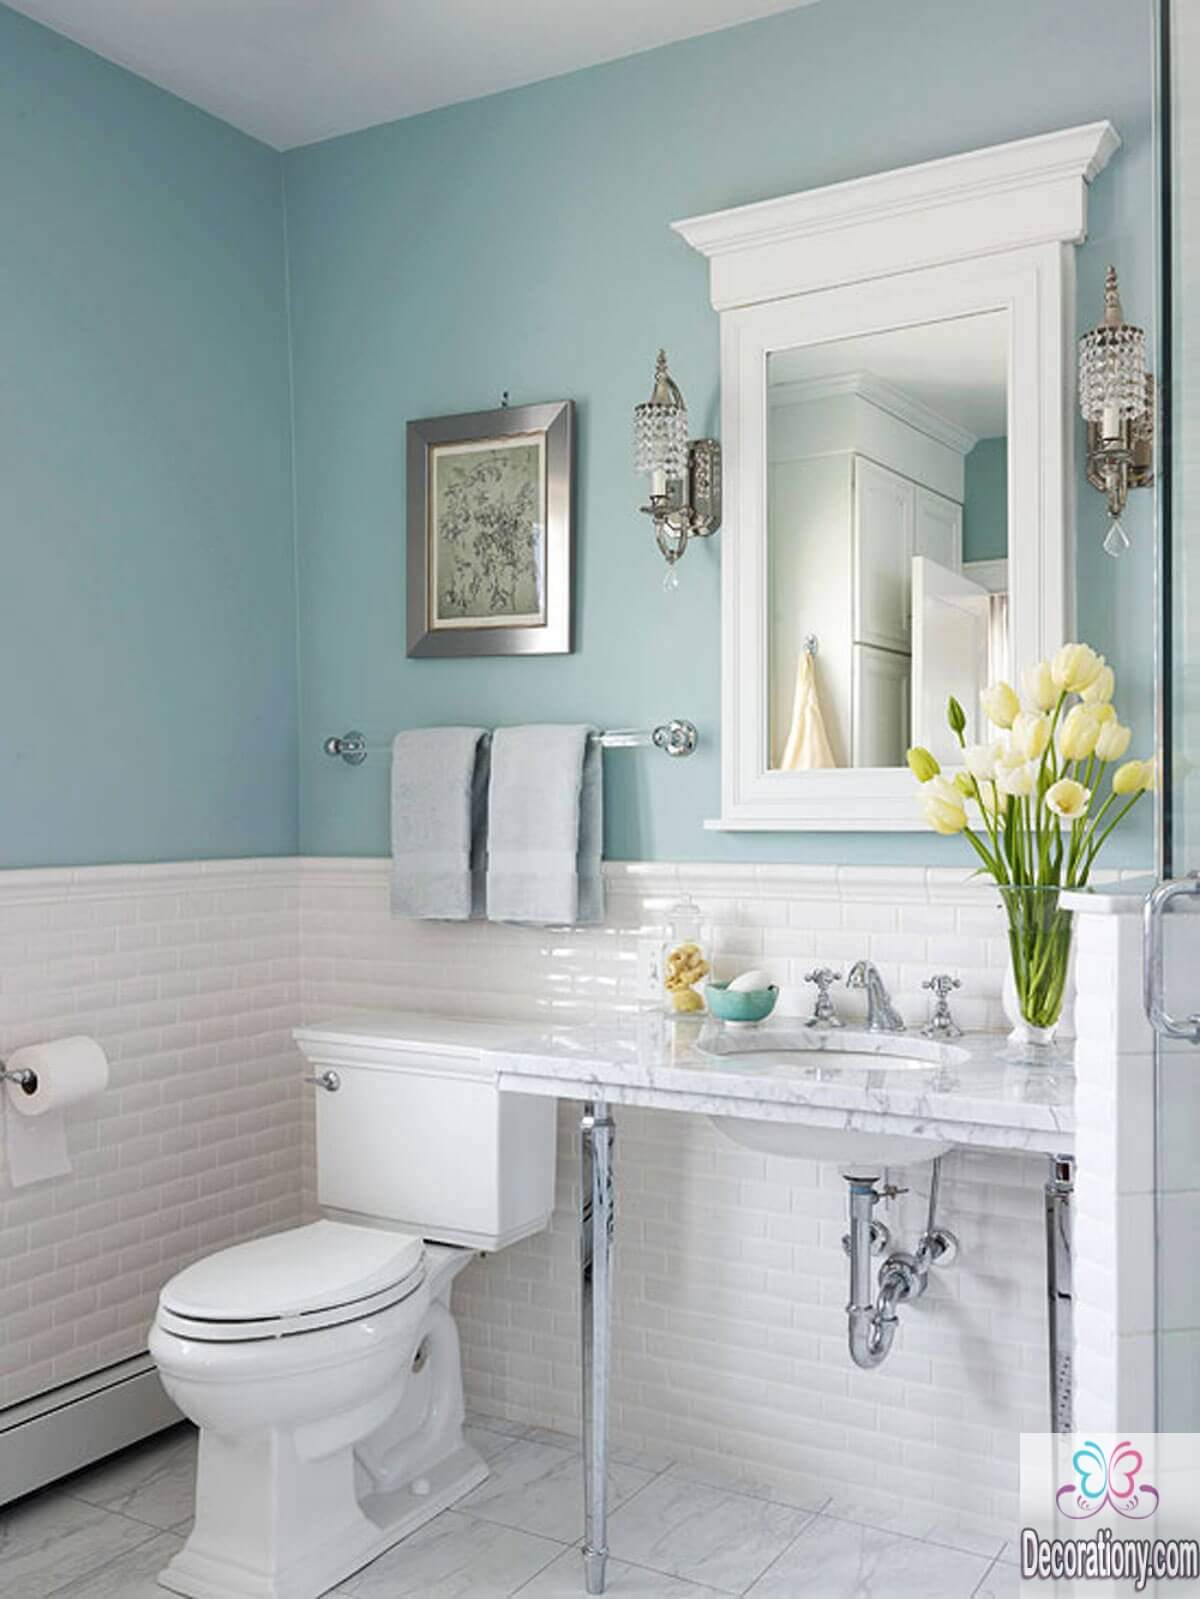 10 affordable colors for small bathrooms decoration y for Small toilet and bath design